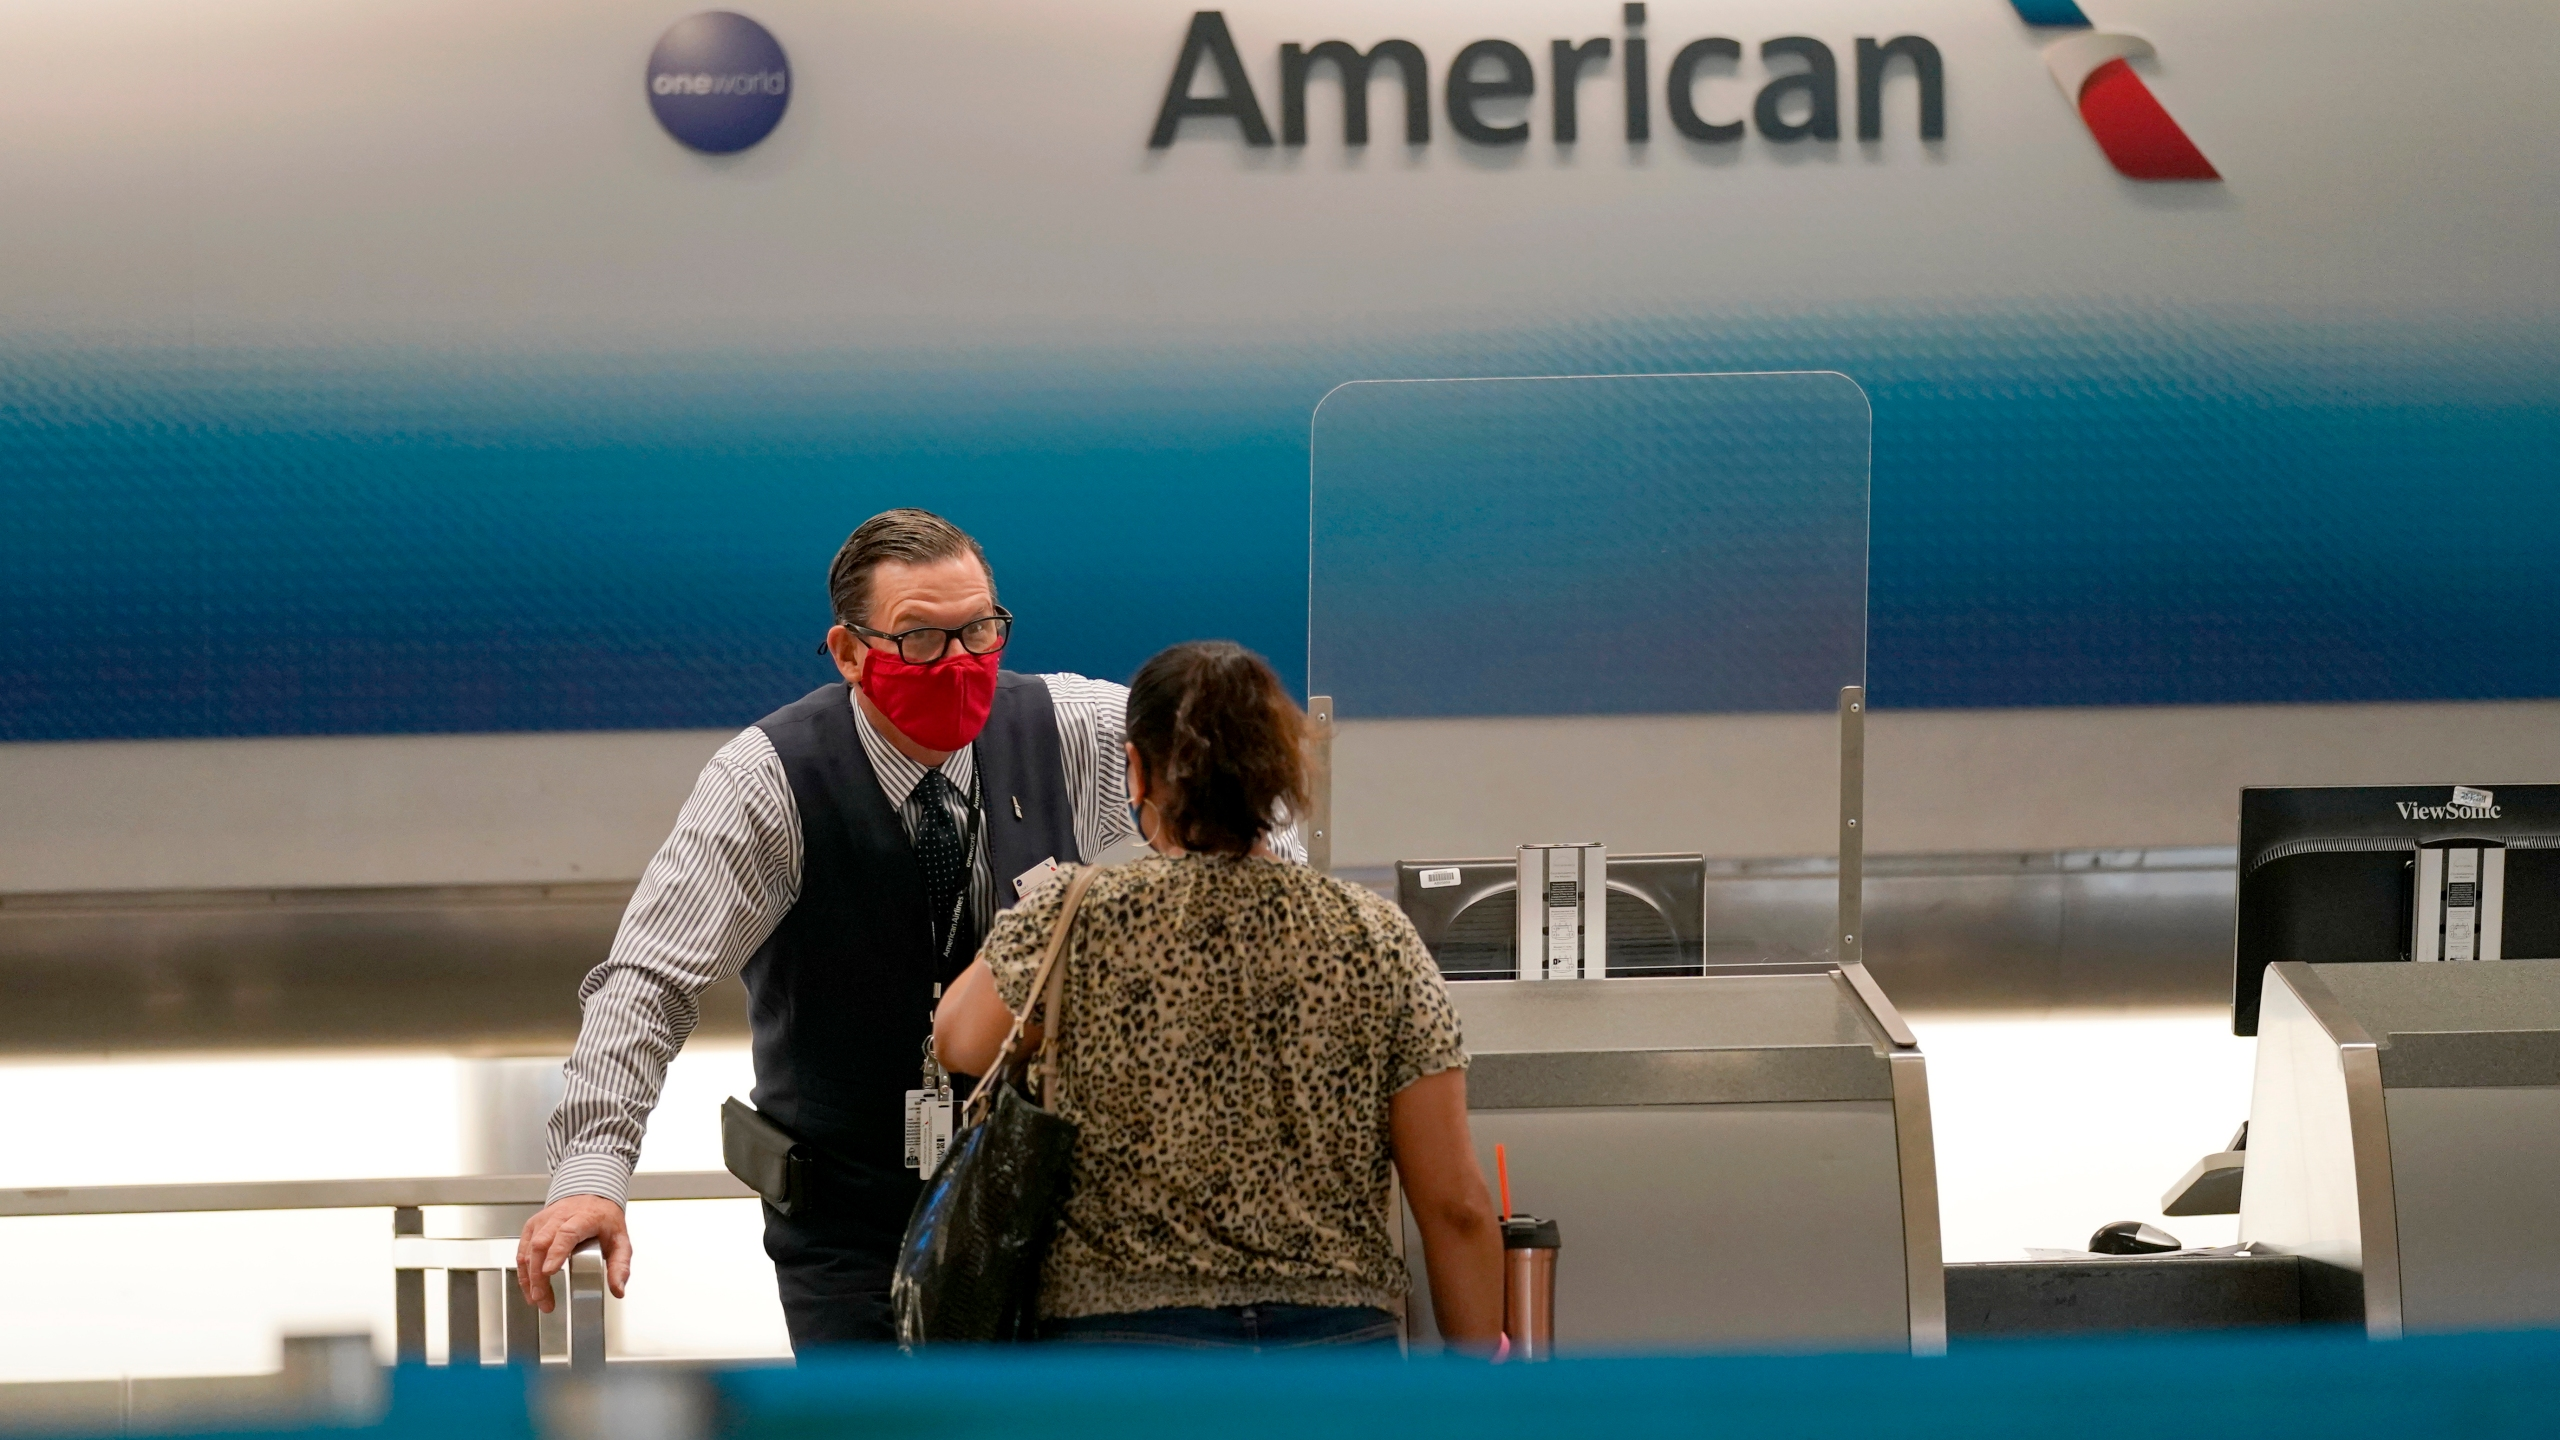 An American Airlines ticket agent works with a customer at Miami International Airport during the coronavirus pandemic on Sept. 30, 2020, in Miami. (AP Photo/Lynne Sladky, File)